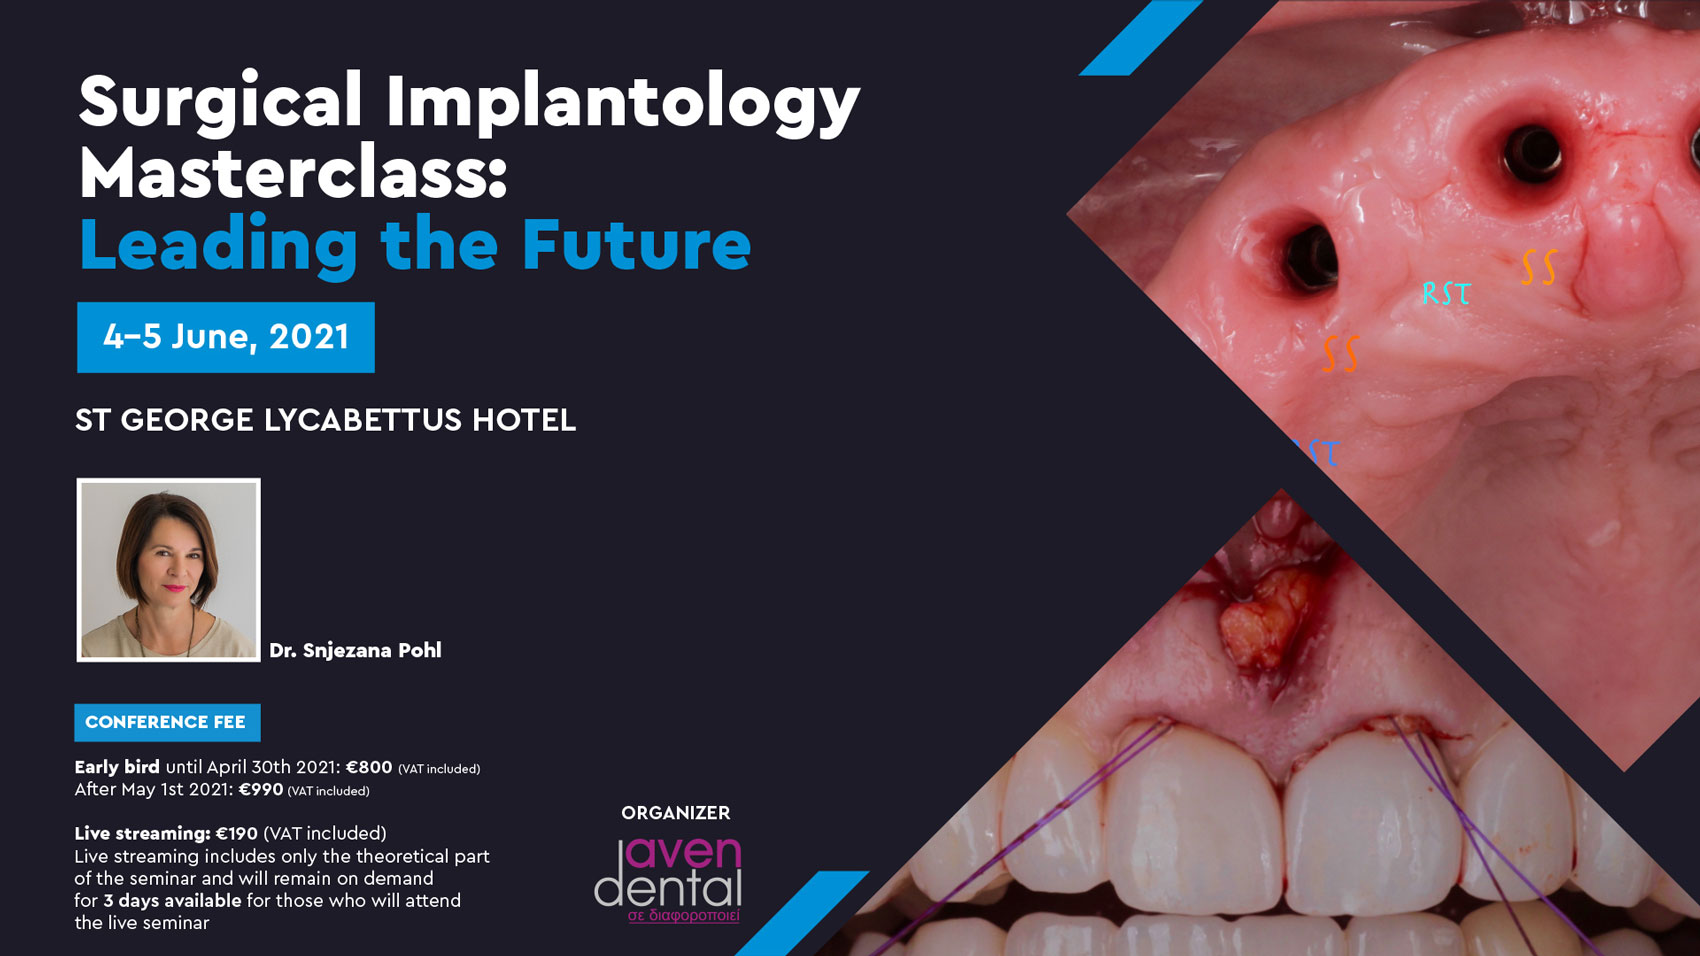 Surgical Implantology Masterclass